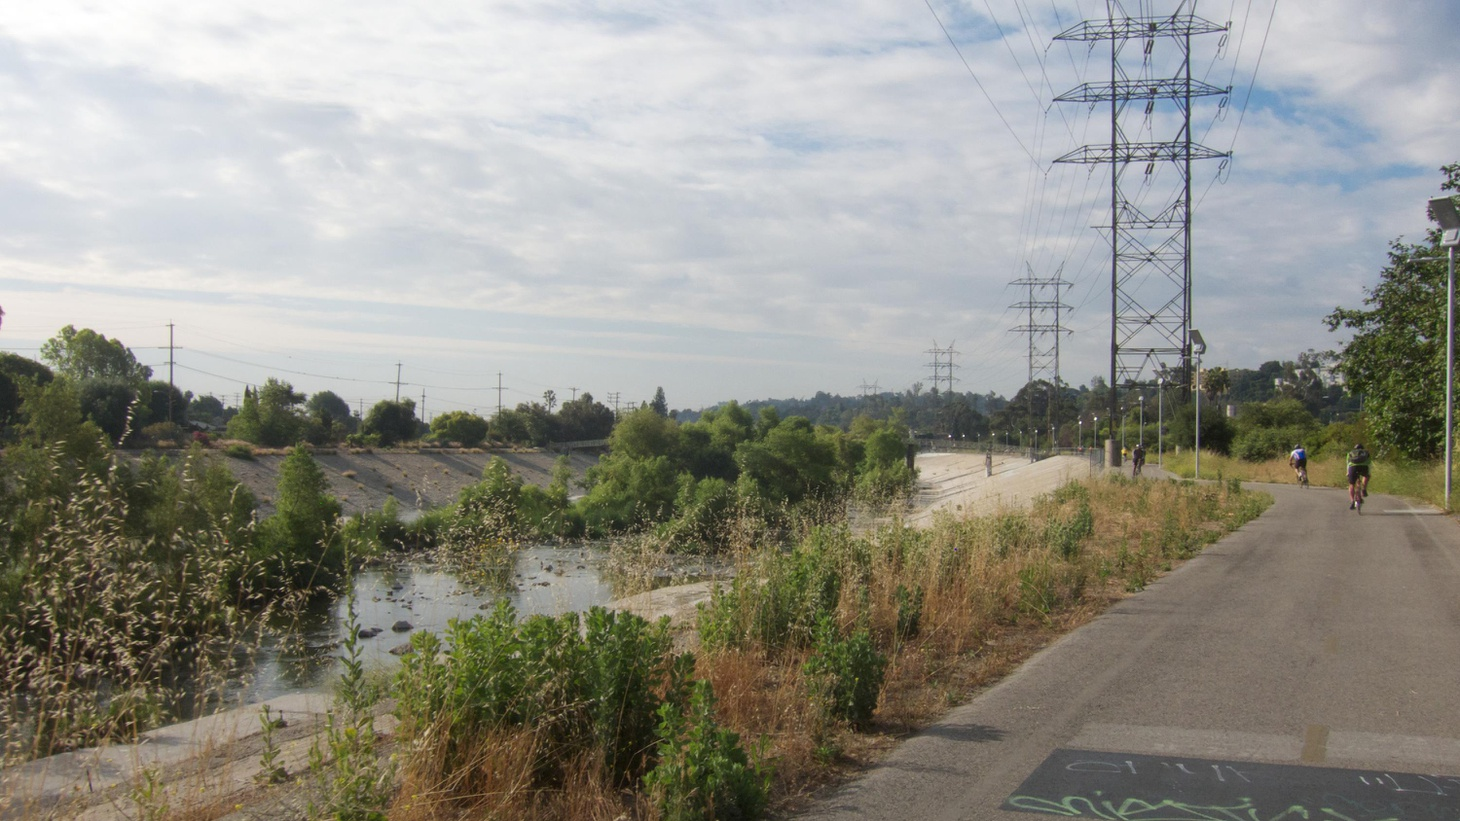 For years a concrete flood channel, the Army Corps of Engineers has come up with a plan to restore the Los Angeles River, between Griffith Park and downtown LA.